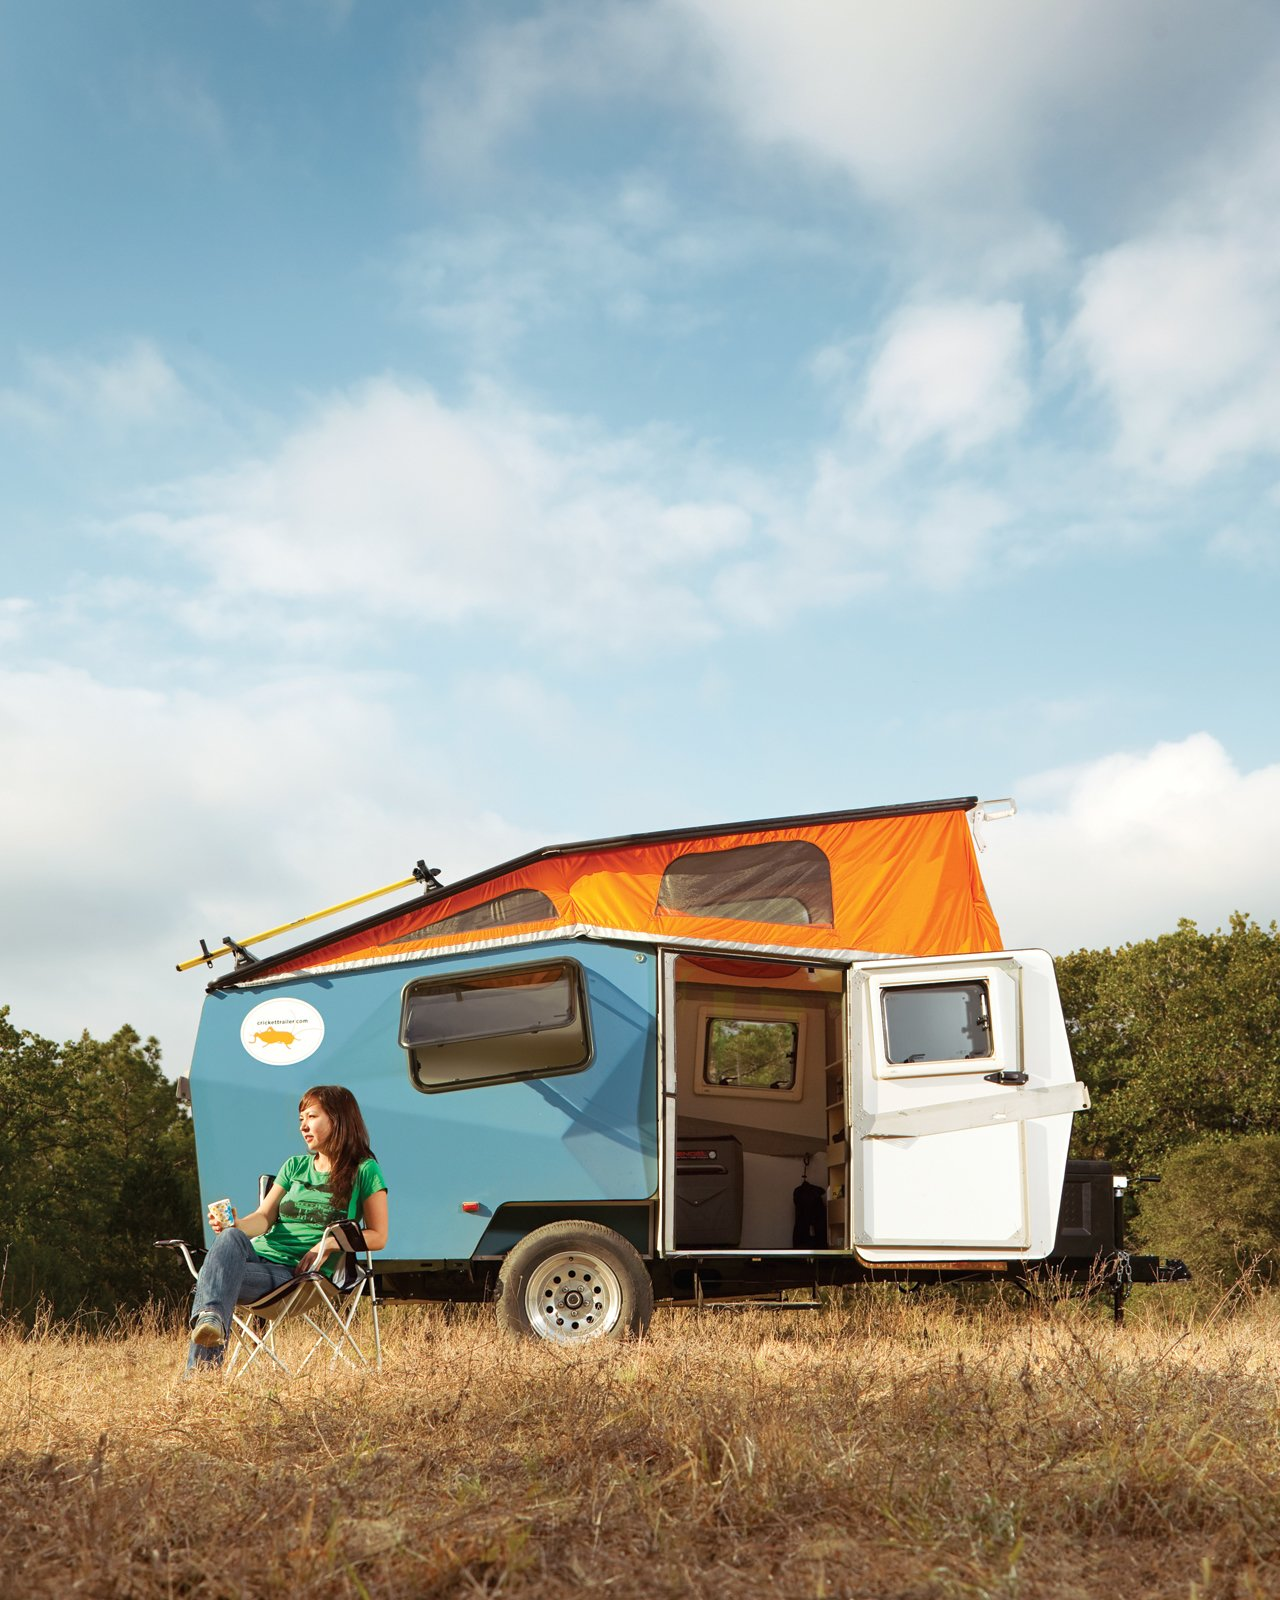 """In early May, I headed down to Texas to report the October 2011 issue Off the Grid story about a sustainable home in Austin and then drove an hour out of the city to spend a night camping in a Cricket Trailer, a small, self-contained pop-up camper. Cricket Trailer founder and designer Garrett Finney drove from Houston, where he manufactures the trailers in a 5,000-square-foot factory, and met me at the 9E Ranch in Smithville. After orienting me to what he calls """"a portable adventure living space,"""" he took off and I spent the evening camping out and testing all the Cricket Trailer has to offer. Tagged: Exterior and Camper Building Type.  Adventure by DAVE MORIN from Modern NASA-Inspired Cricket Trailer"""